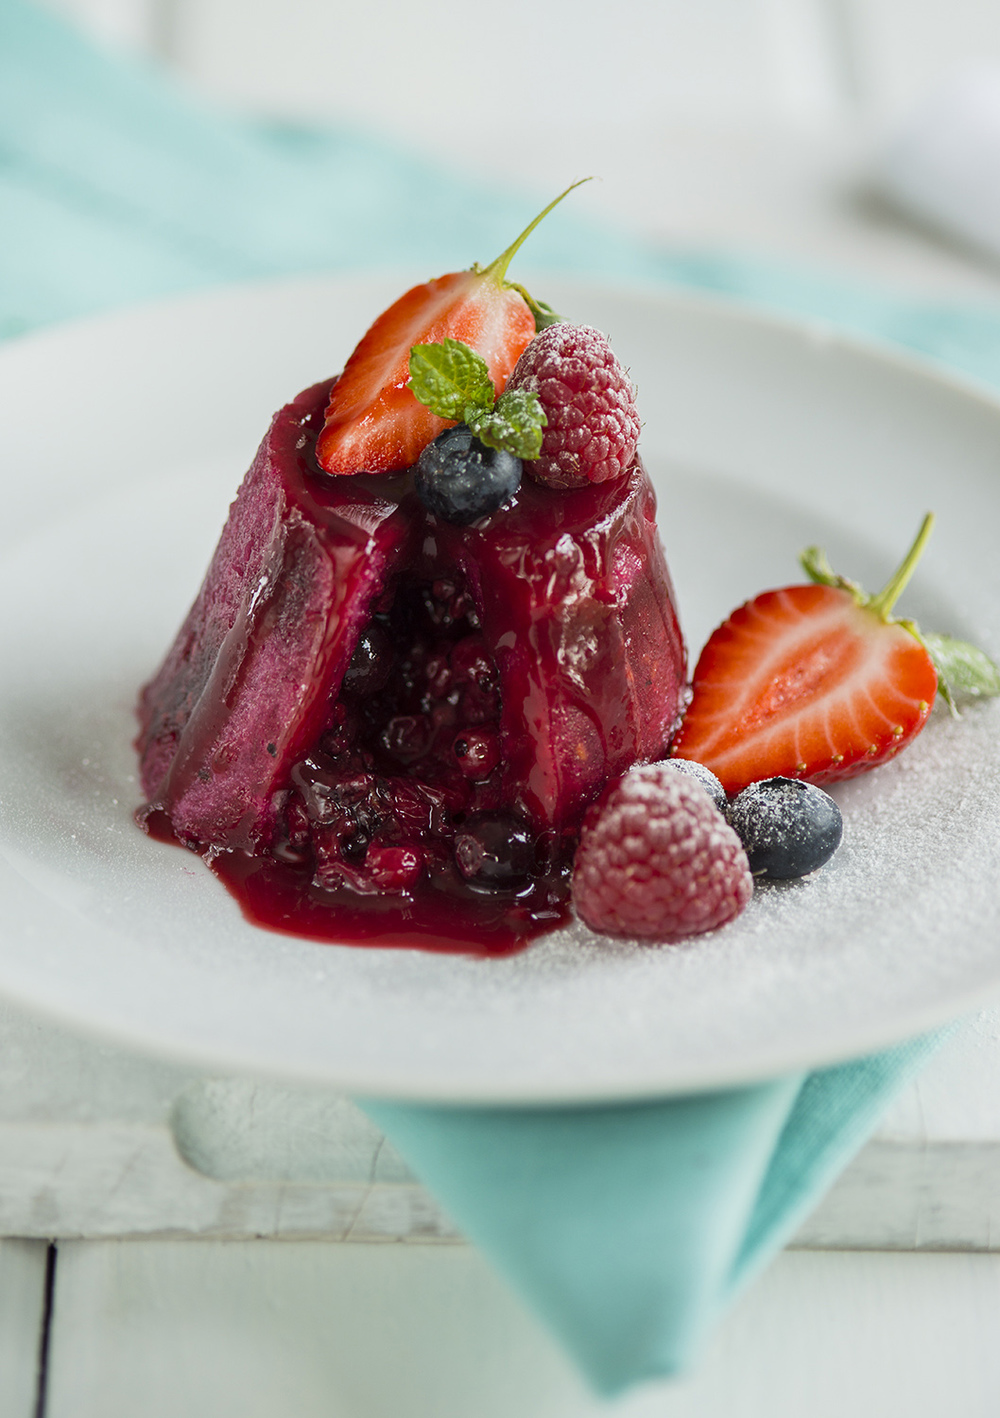 20150106-Summer pudding, cream -round-344.jpg